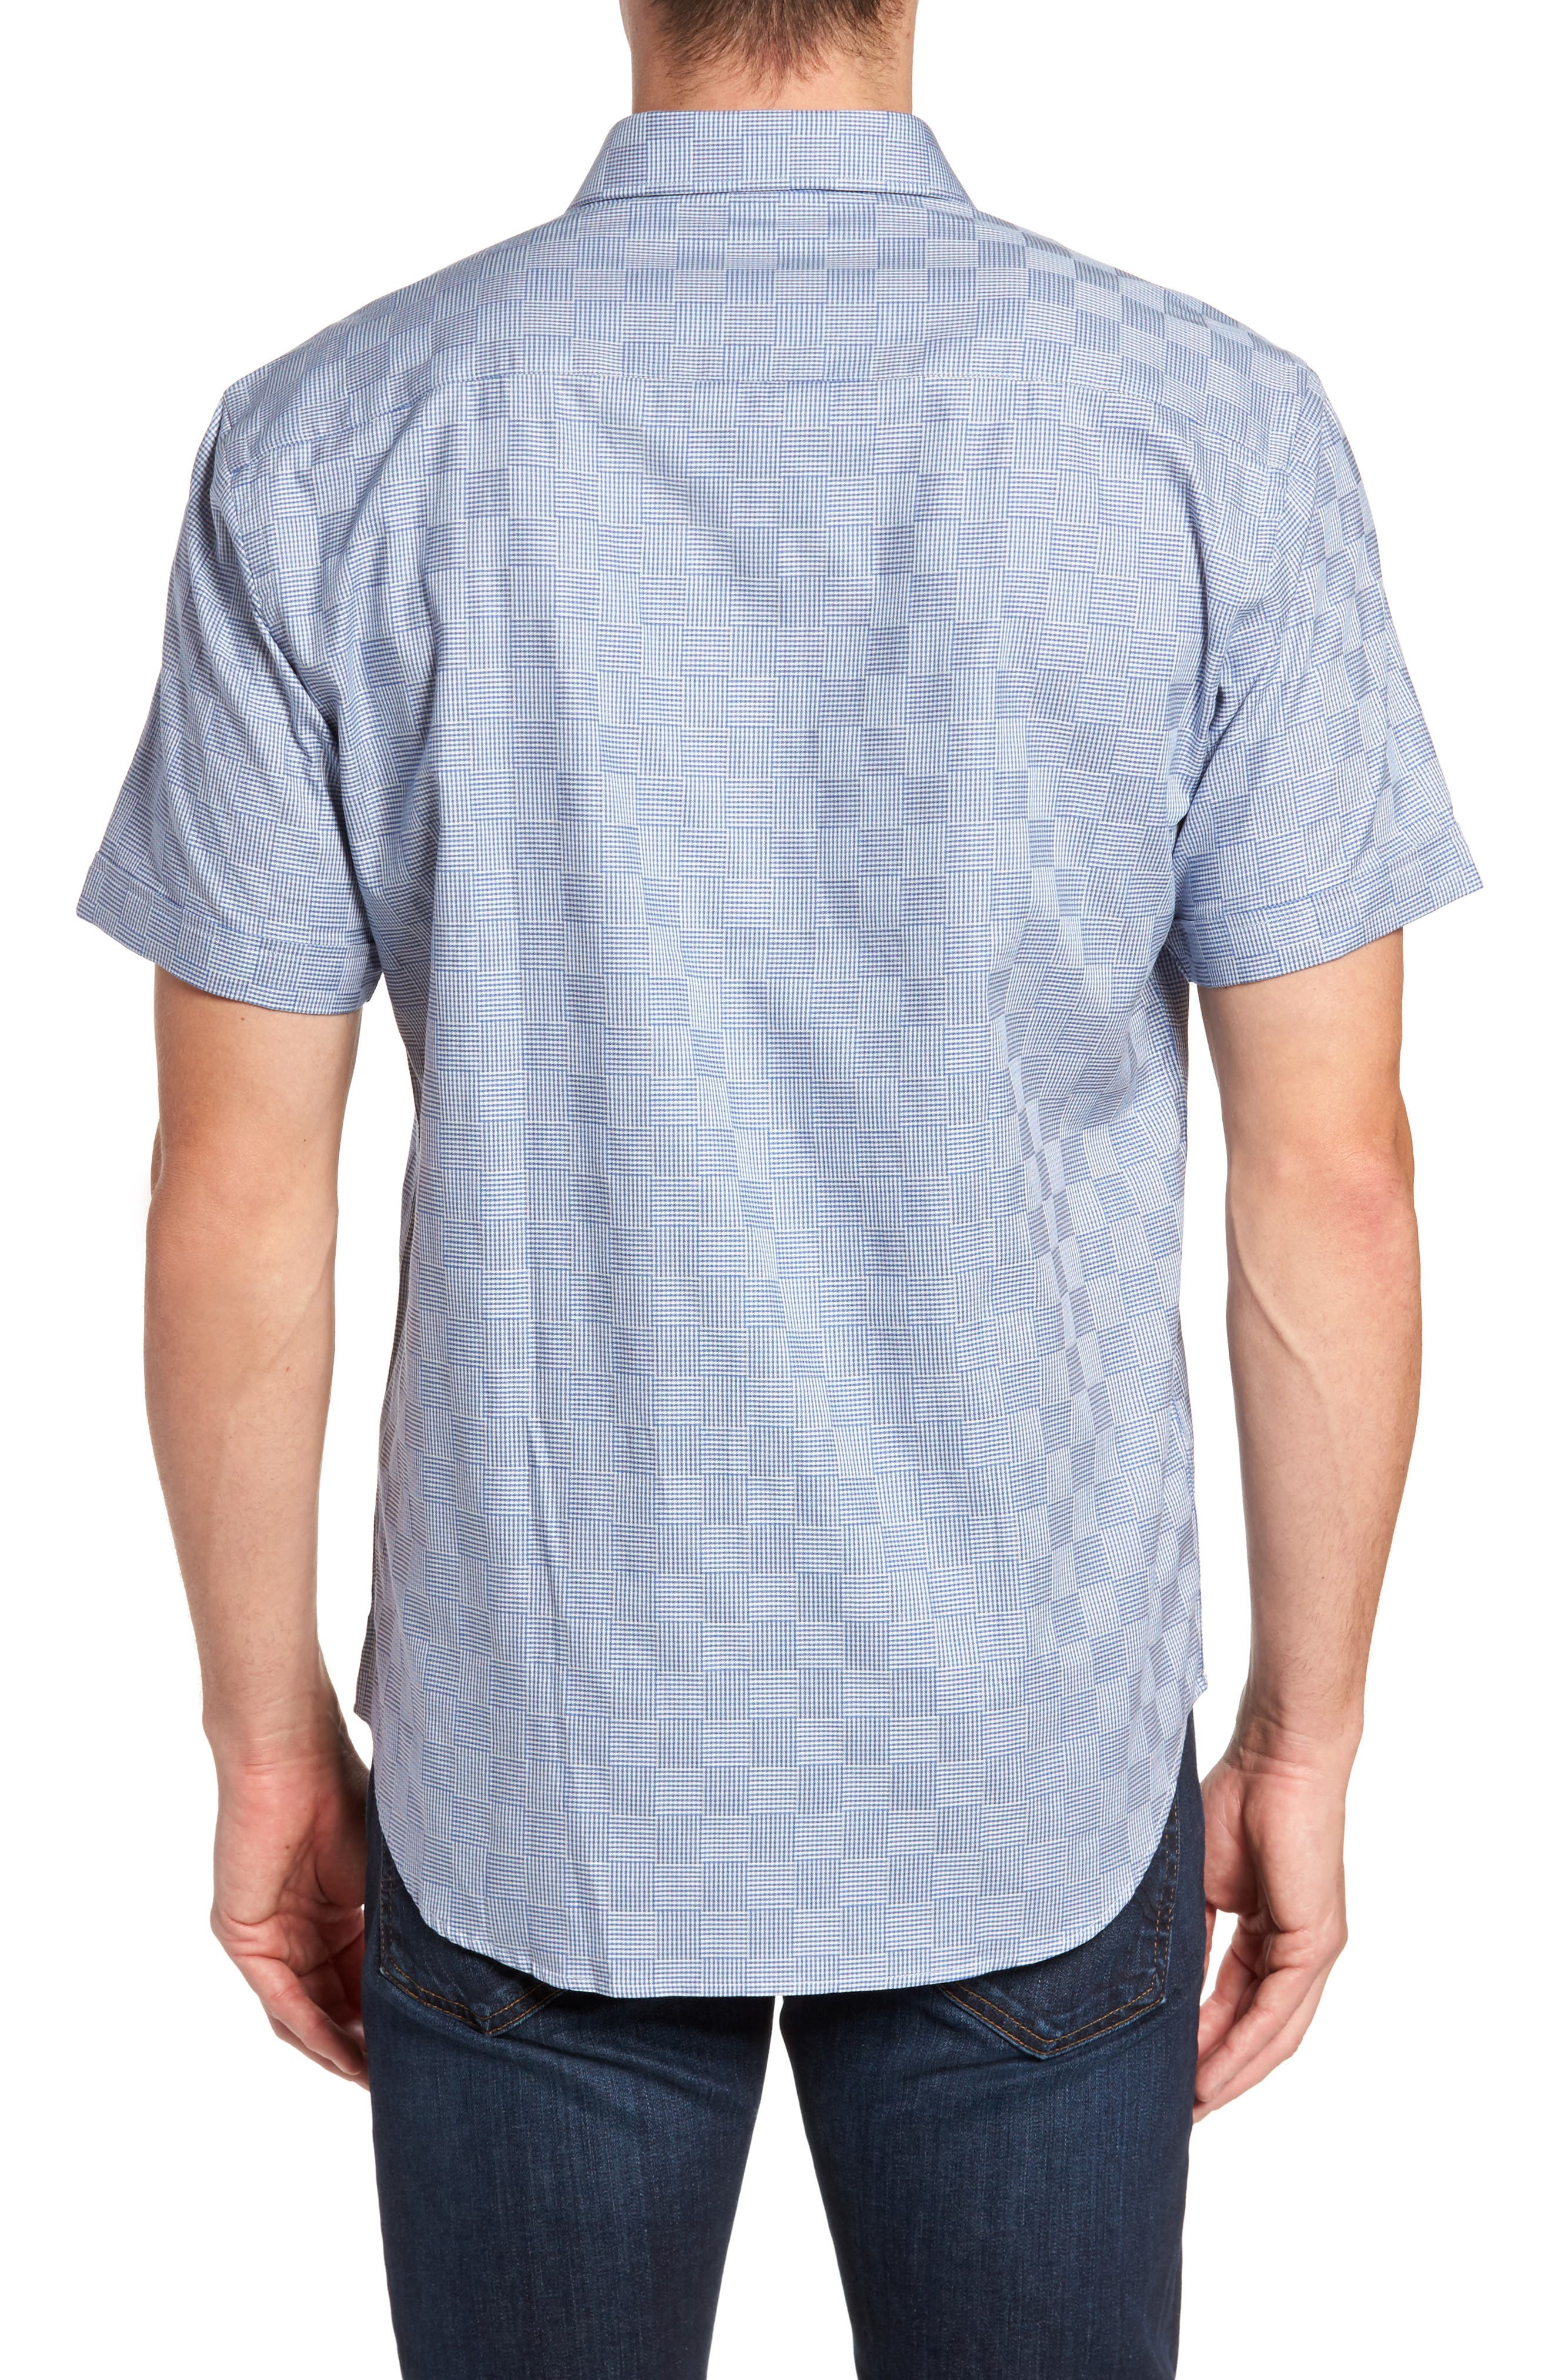 Alternate Image 2  - Bugatchi Shaped Fit Houndstooth Check Sport Shirt